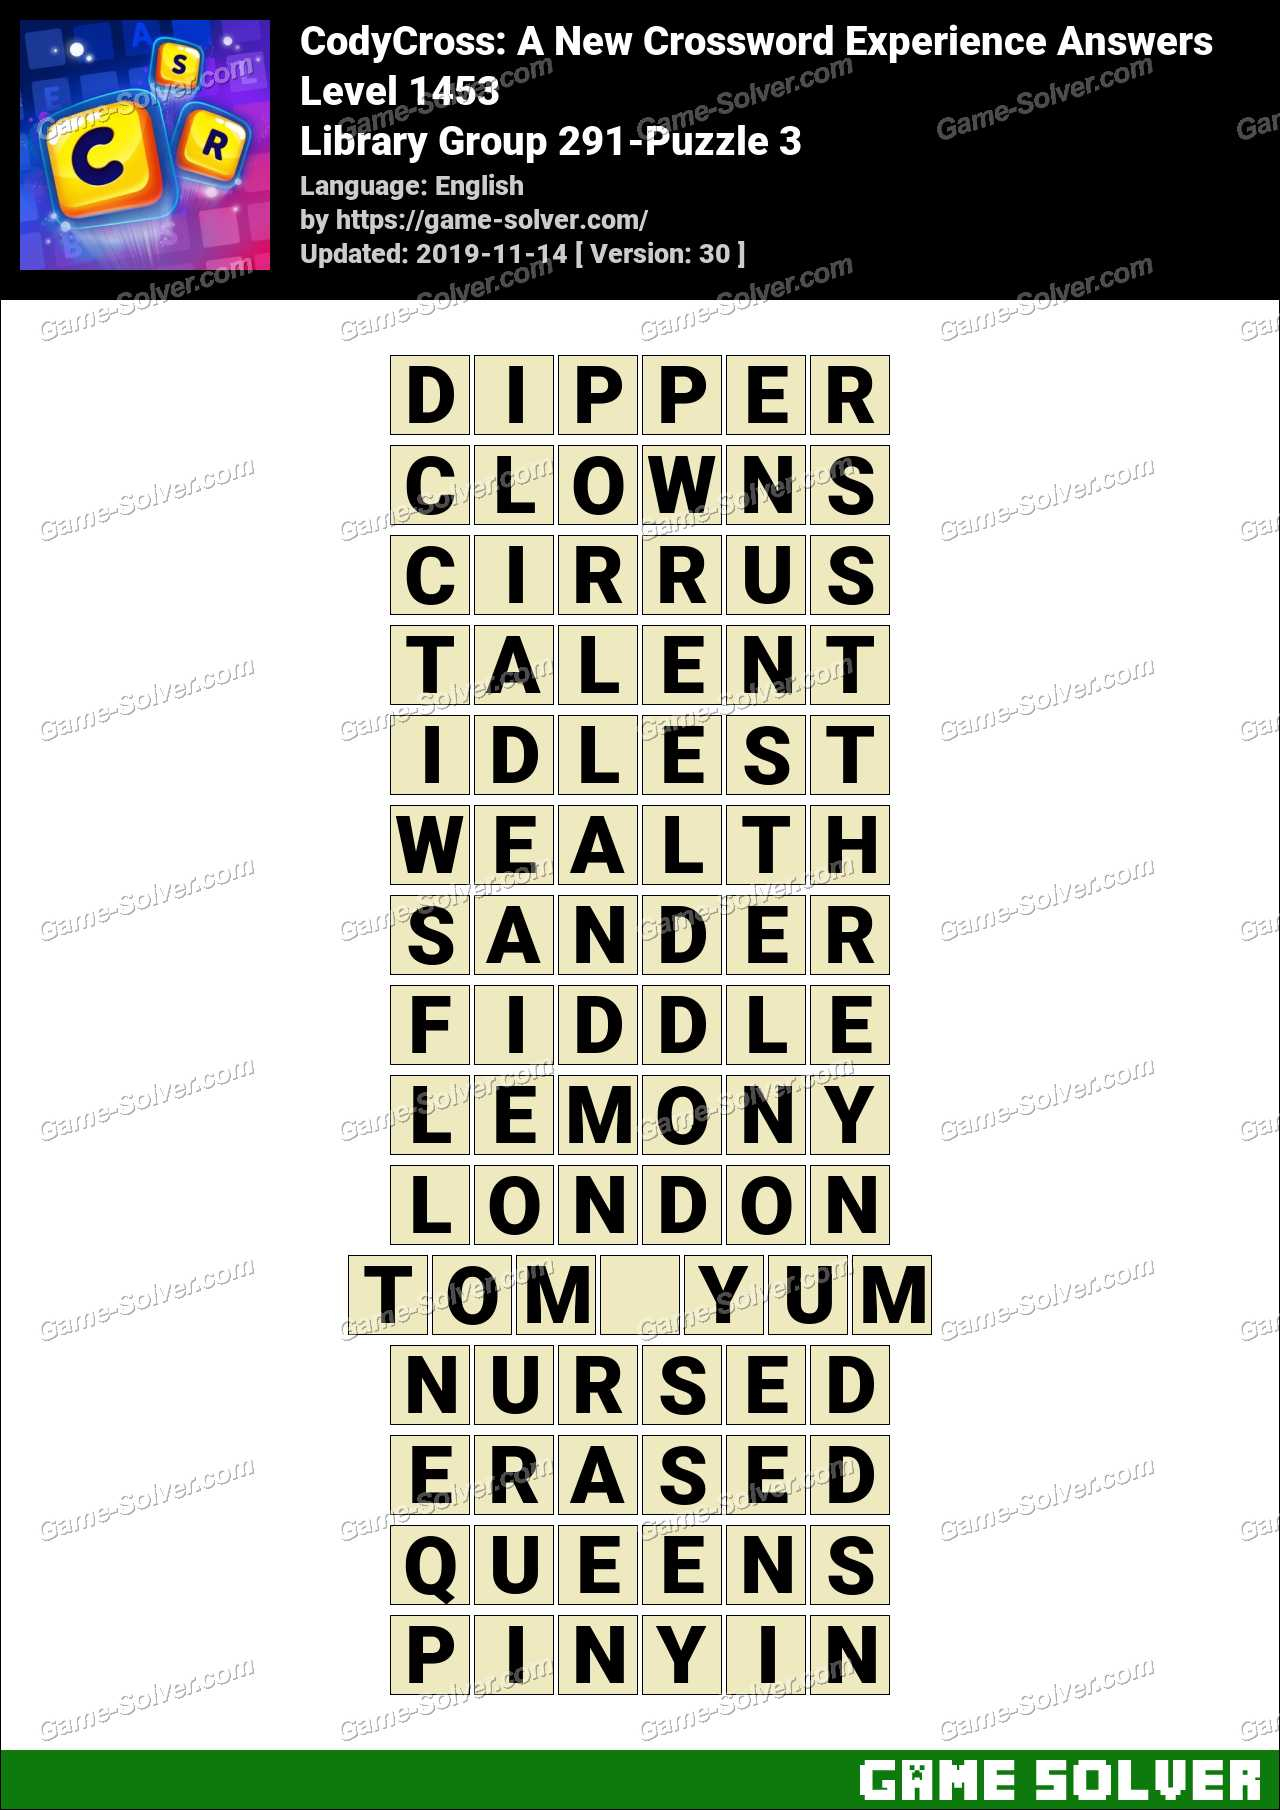 CodyCross Library Group 291-Puzzle 3 Answers